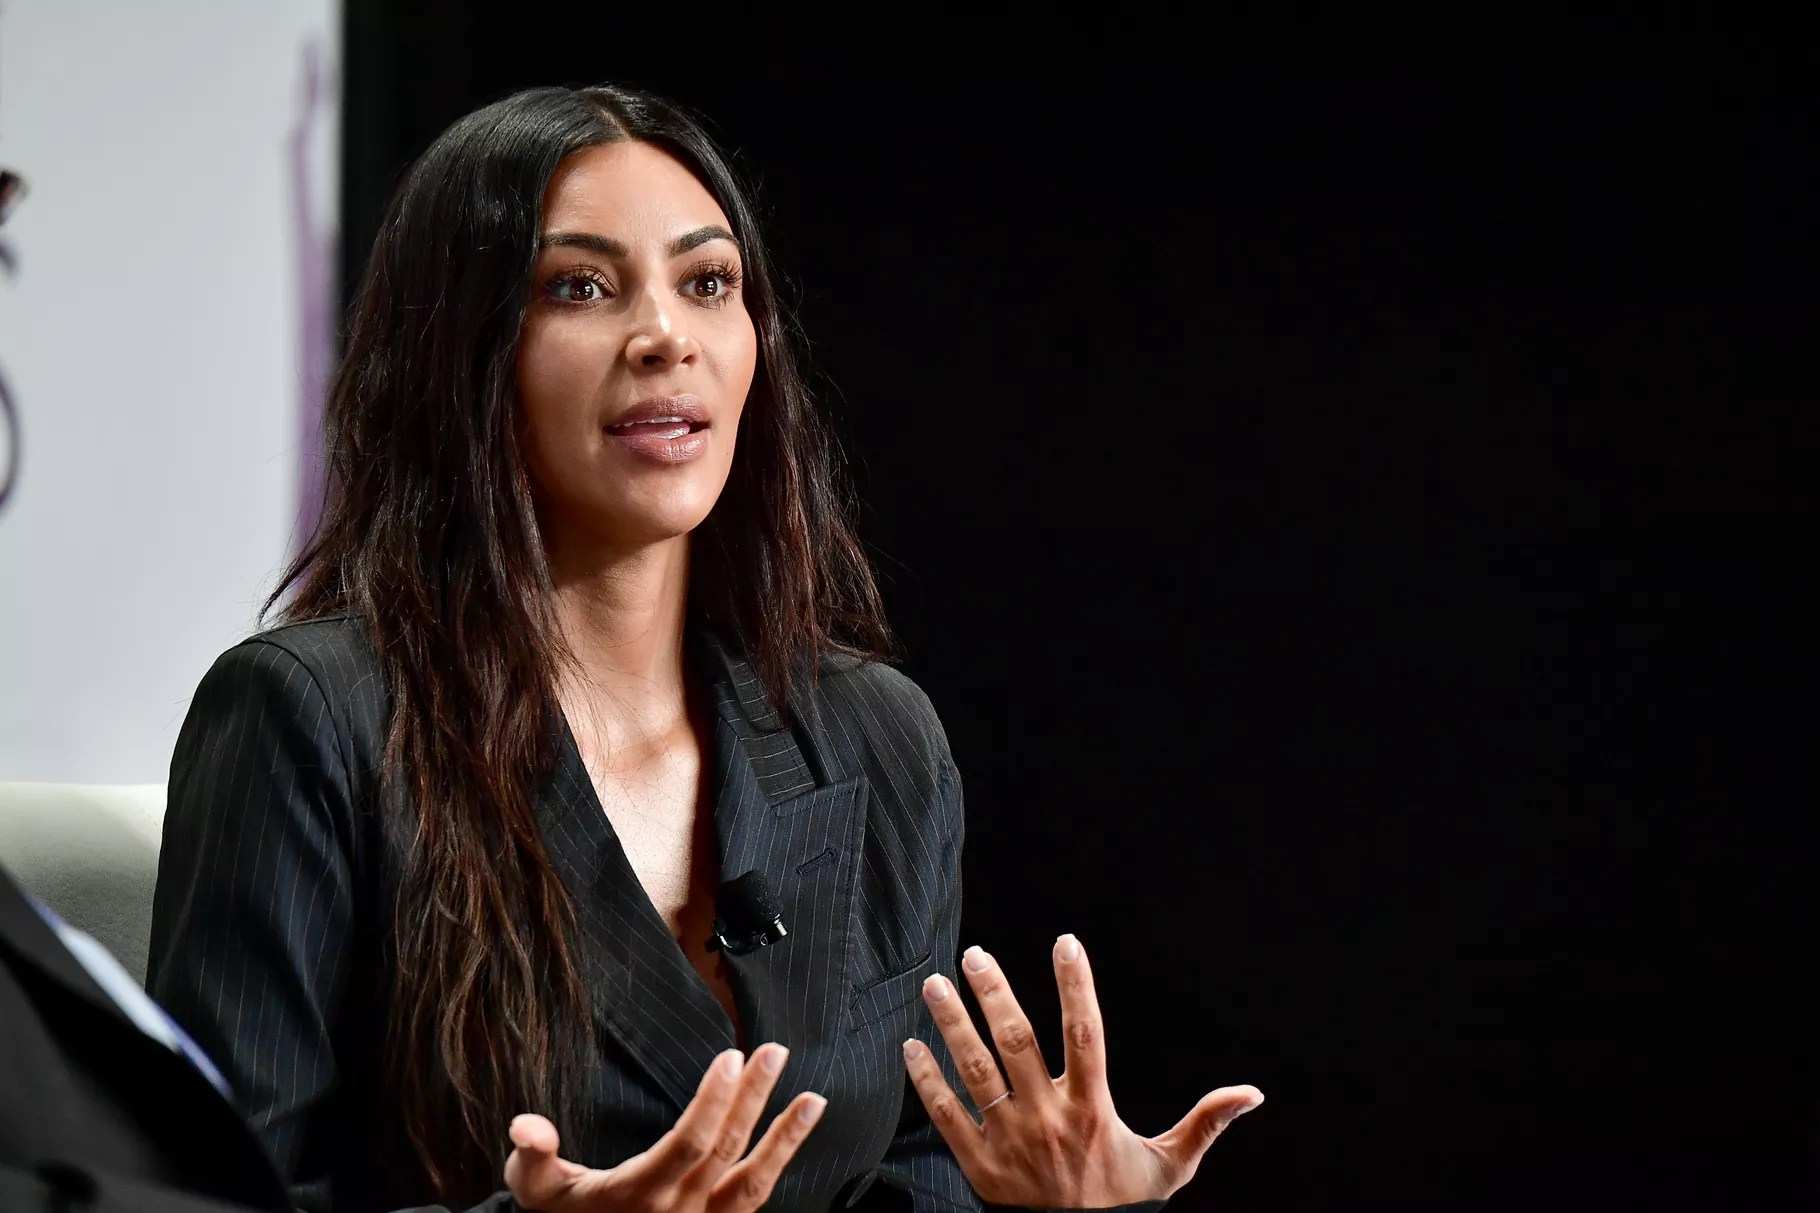 Opinion: Kim Kardashian-West is allowed to care about prison reform